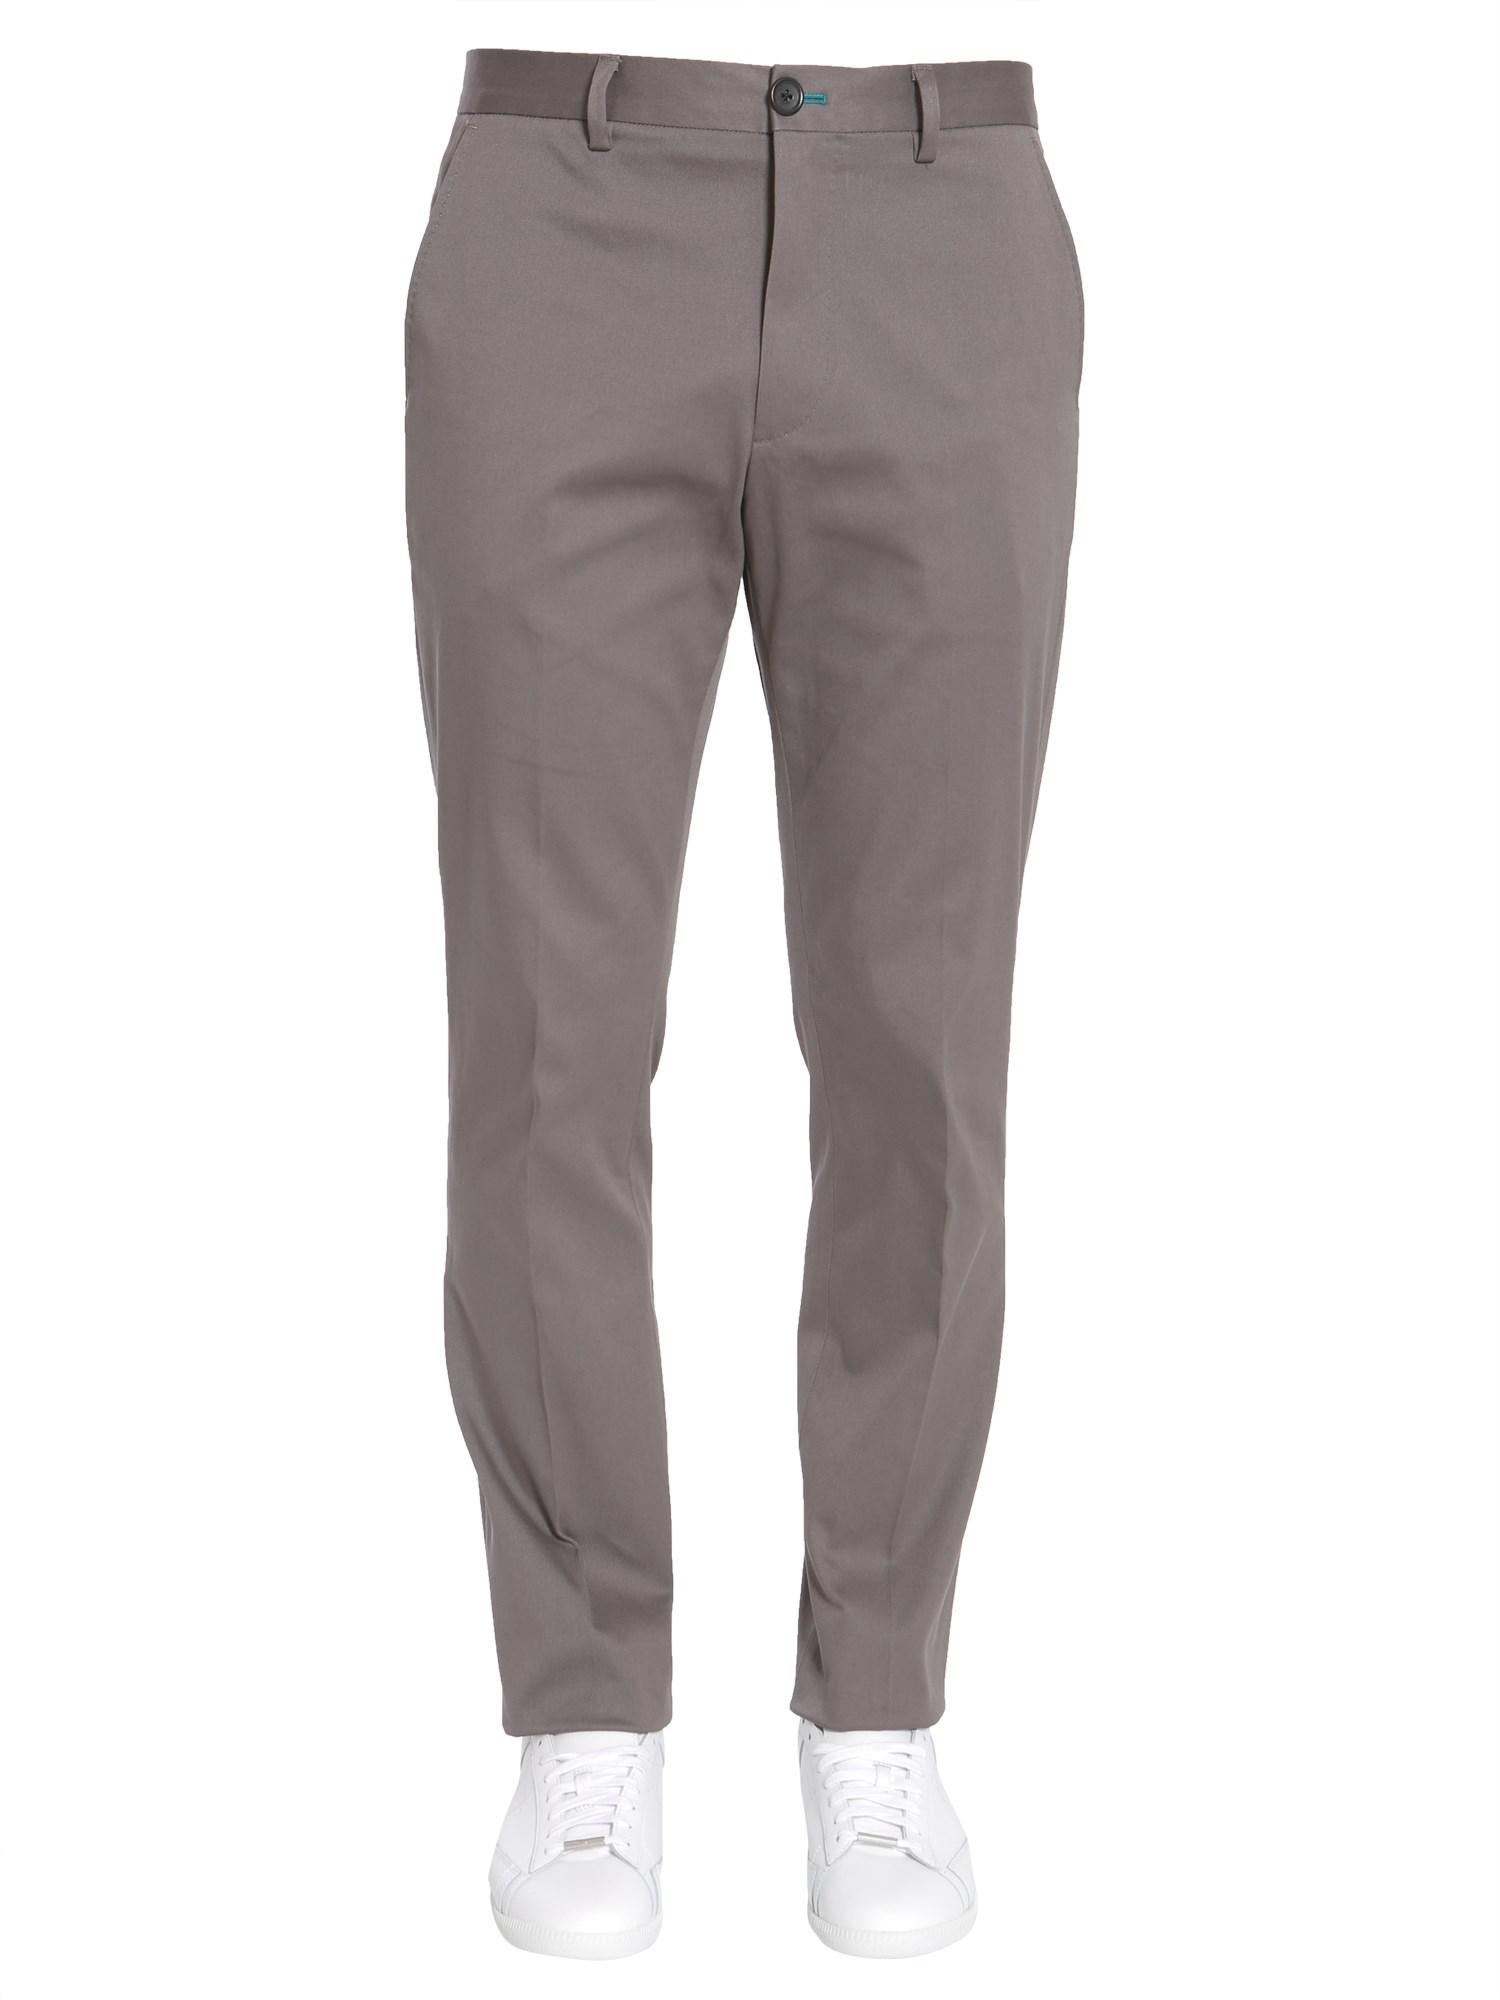 Cheap Lowest Price patterned track chinos - Blue Paul Smith Best Seller Online Outlet Where To Buy yDlDB4xo